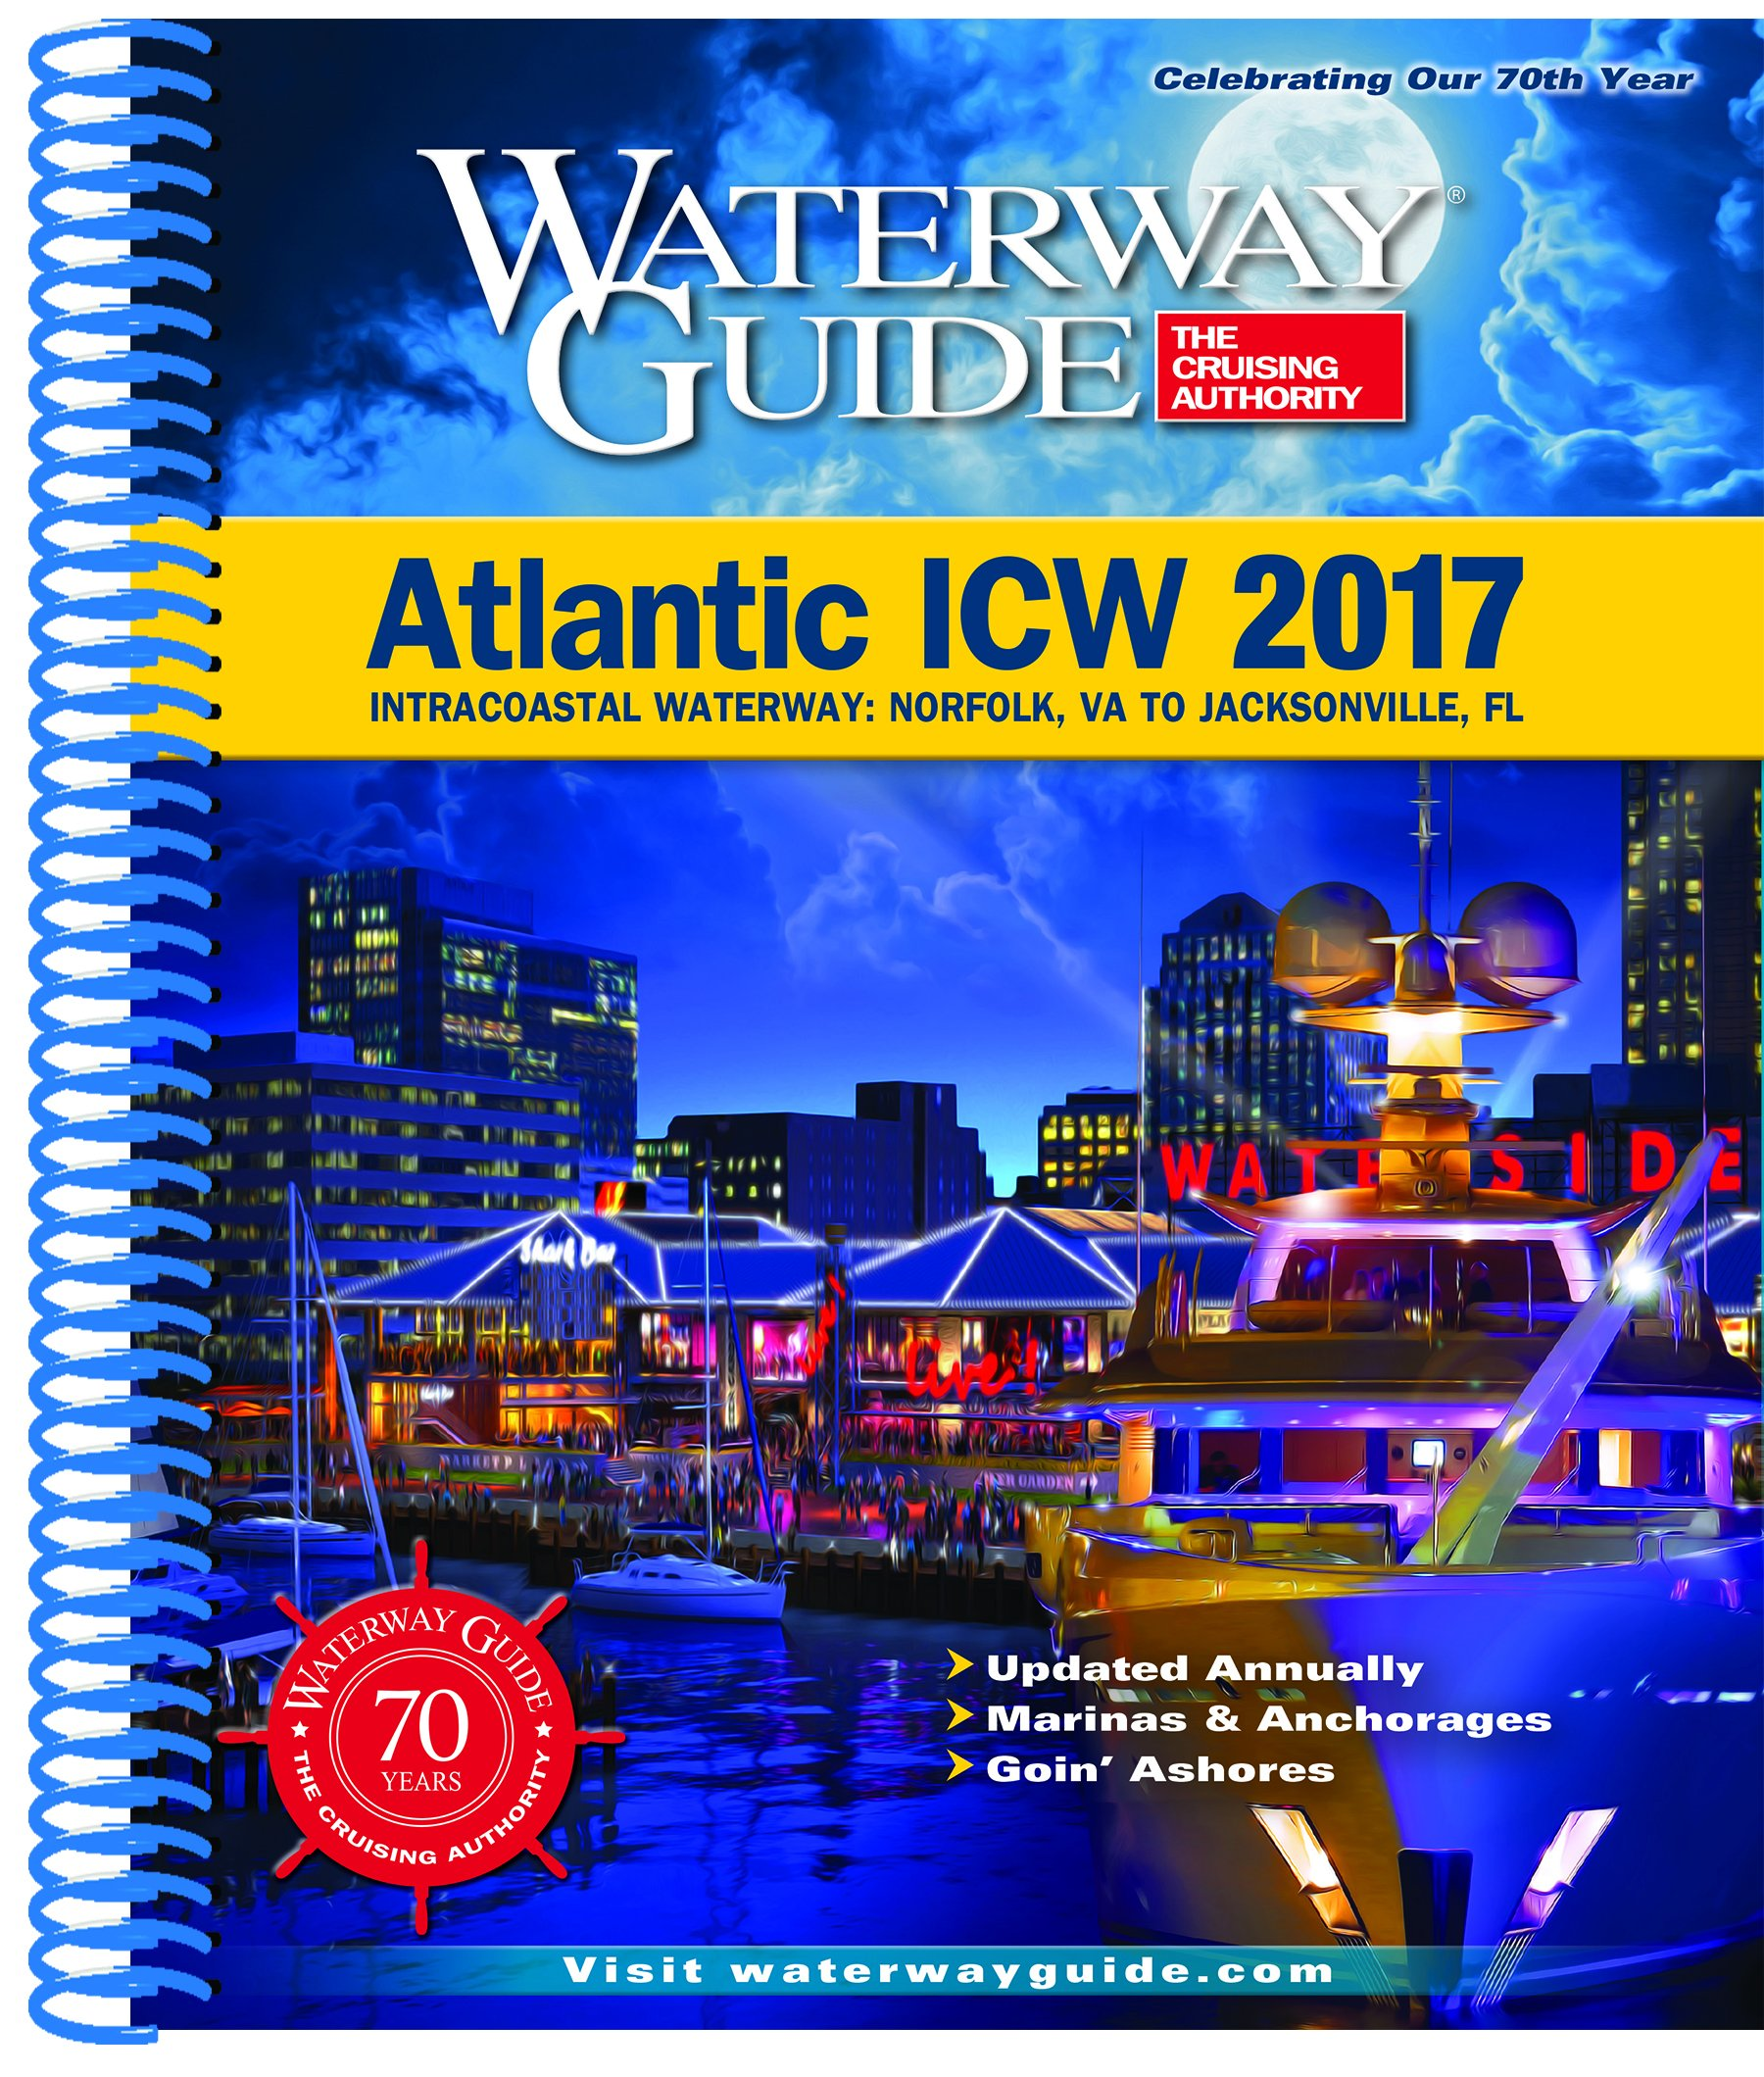 Waterway Guide Atlantic ICW 2017: Intracoastal Waterway ... on map of intercostal, map of rocky shore, map of eastern shore of maryland, map of malecon, map of amalfi coast, map of oregon coast, map of cascade mountains, map of international waterways, map of city, map of osa peninsula, map of beach, map of deserted island, map of kitsap peninsula, map of river, map of inner harbour, map of harbor, map of southeast side, map of beaches, map of gulf of mexico, map of icw,